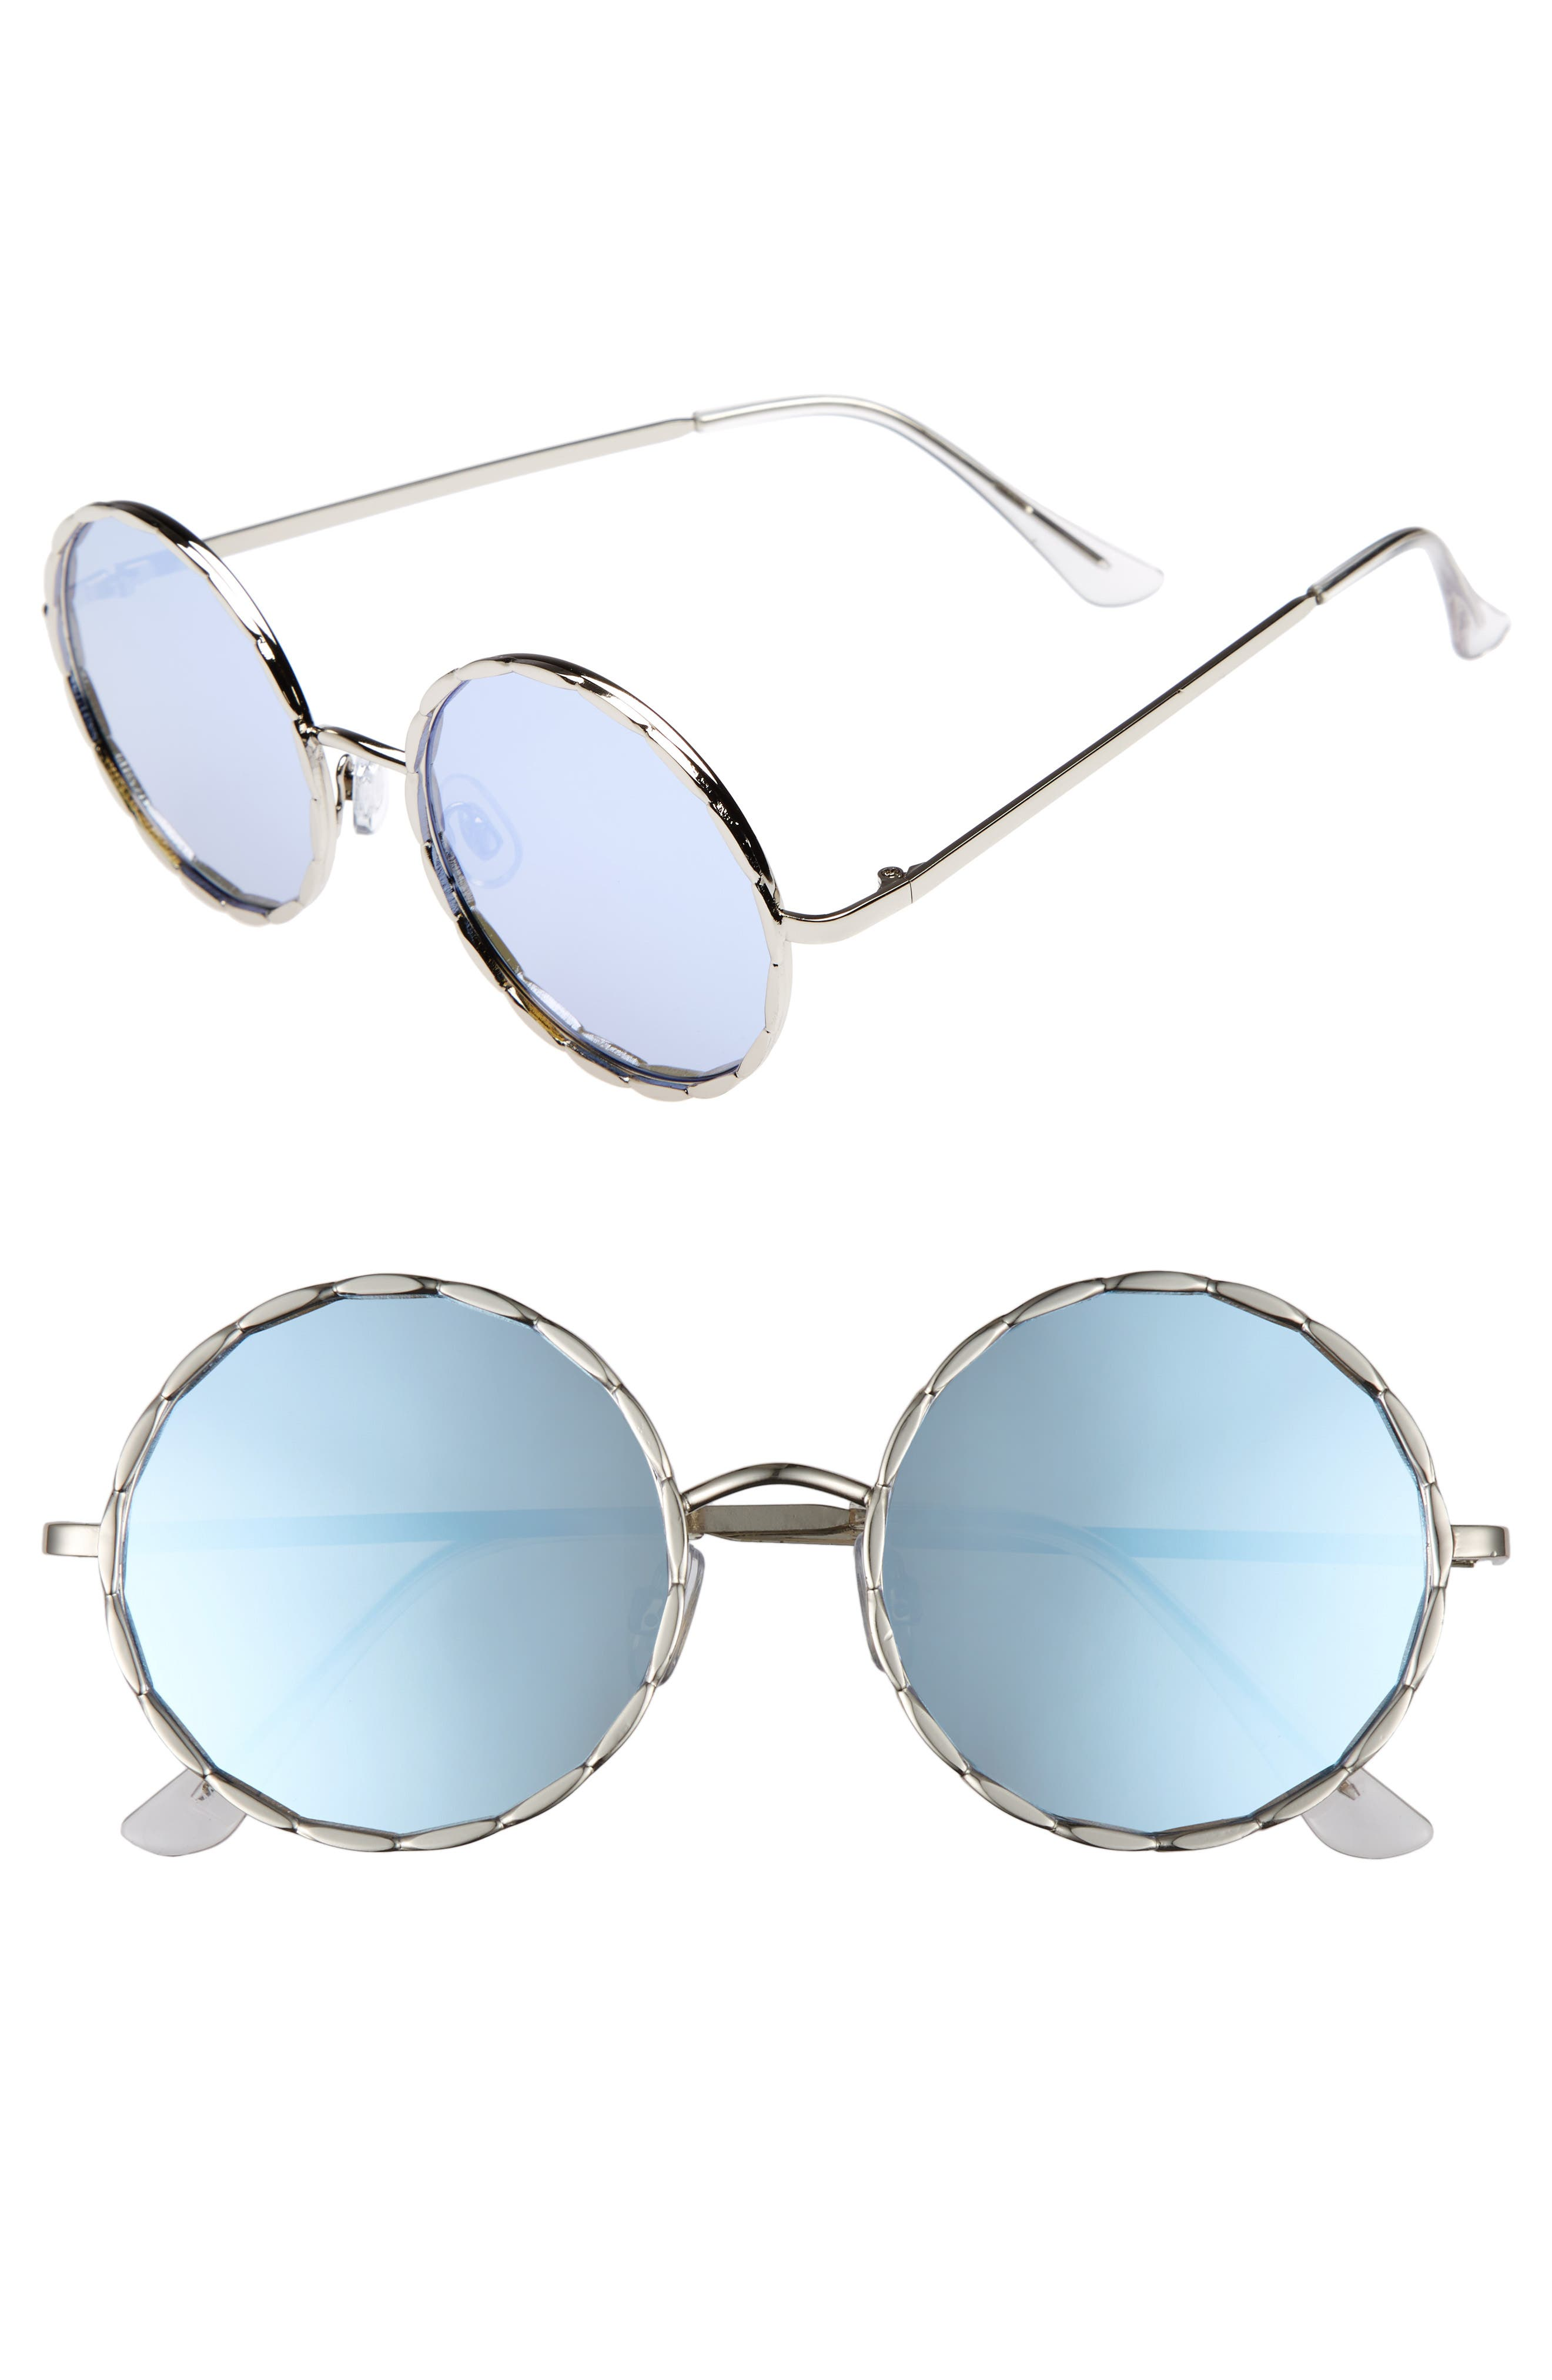 58mm Textured Round Sunglasses,                         Main,                         color, Silver/ Blue